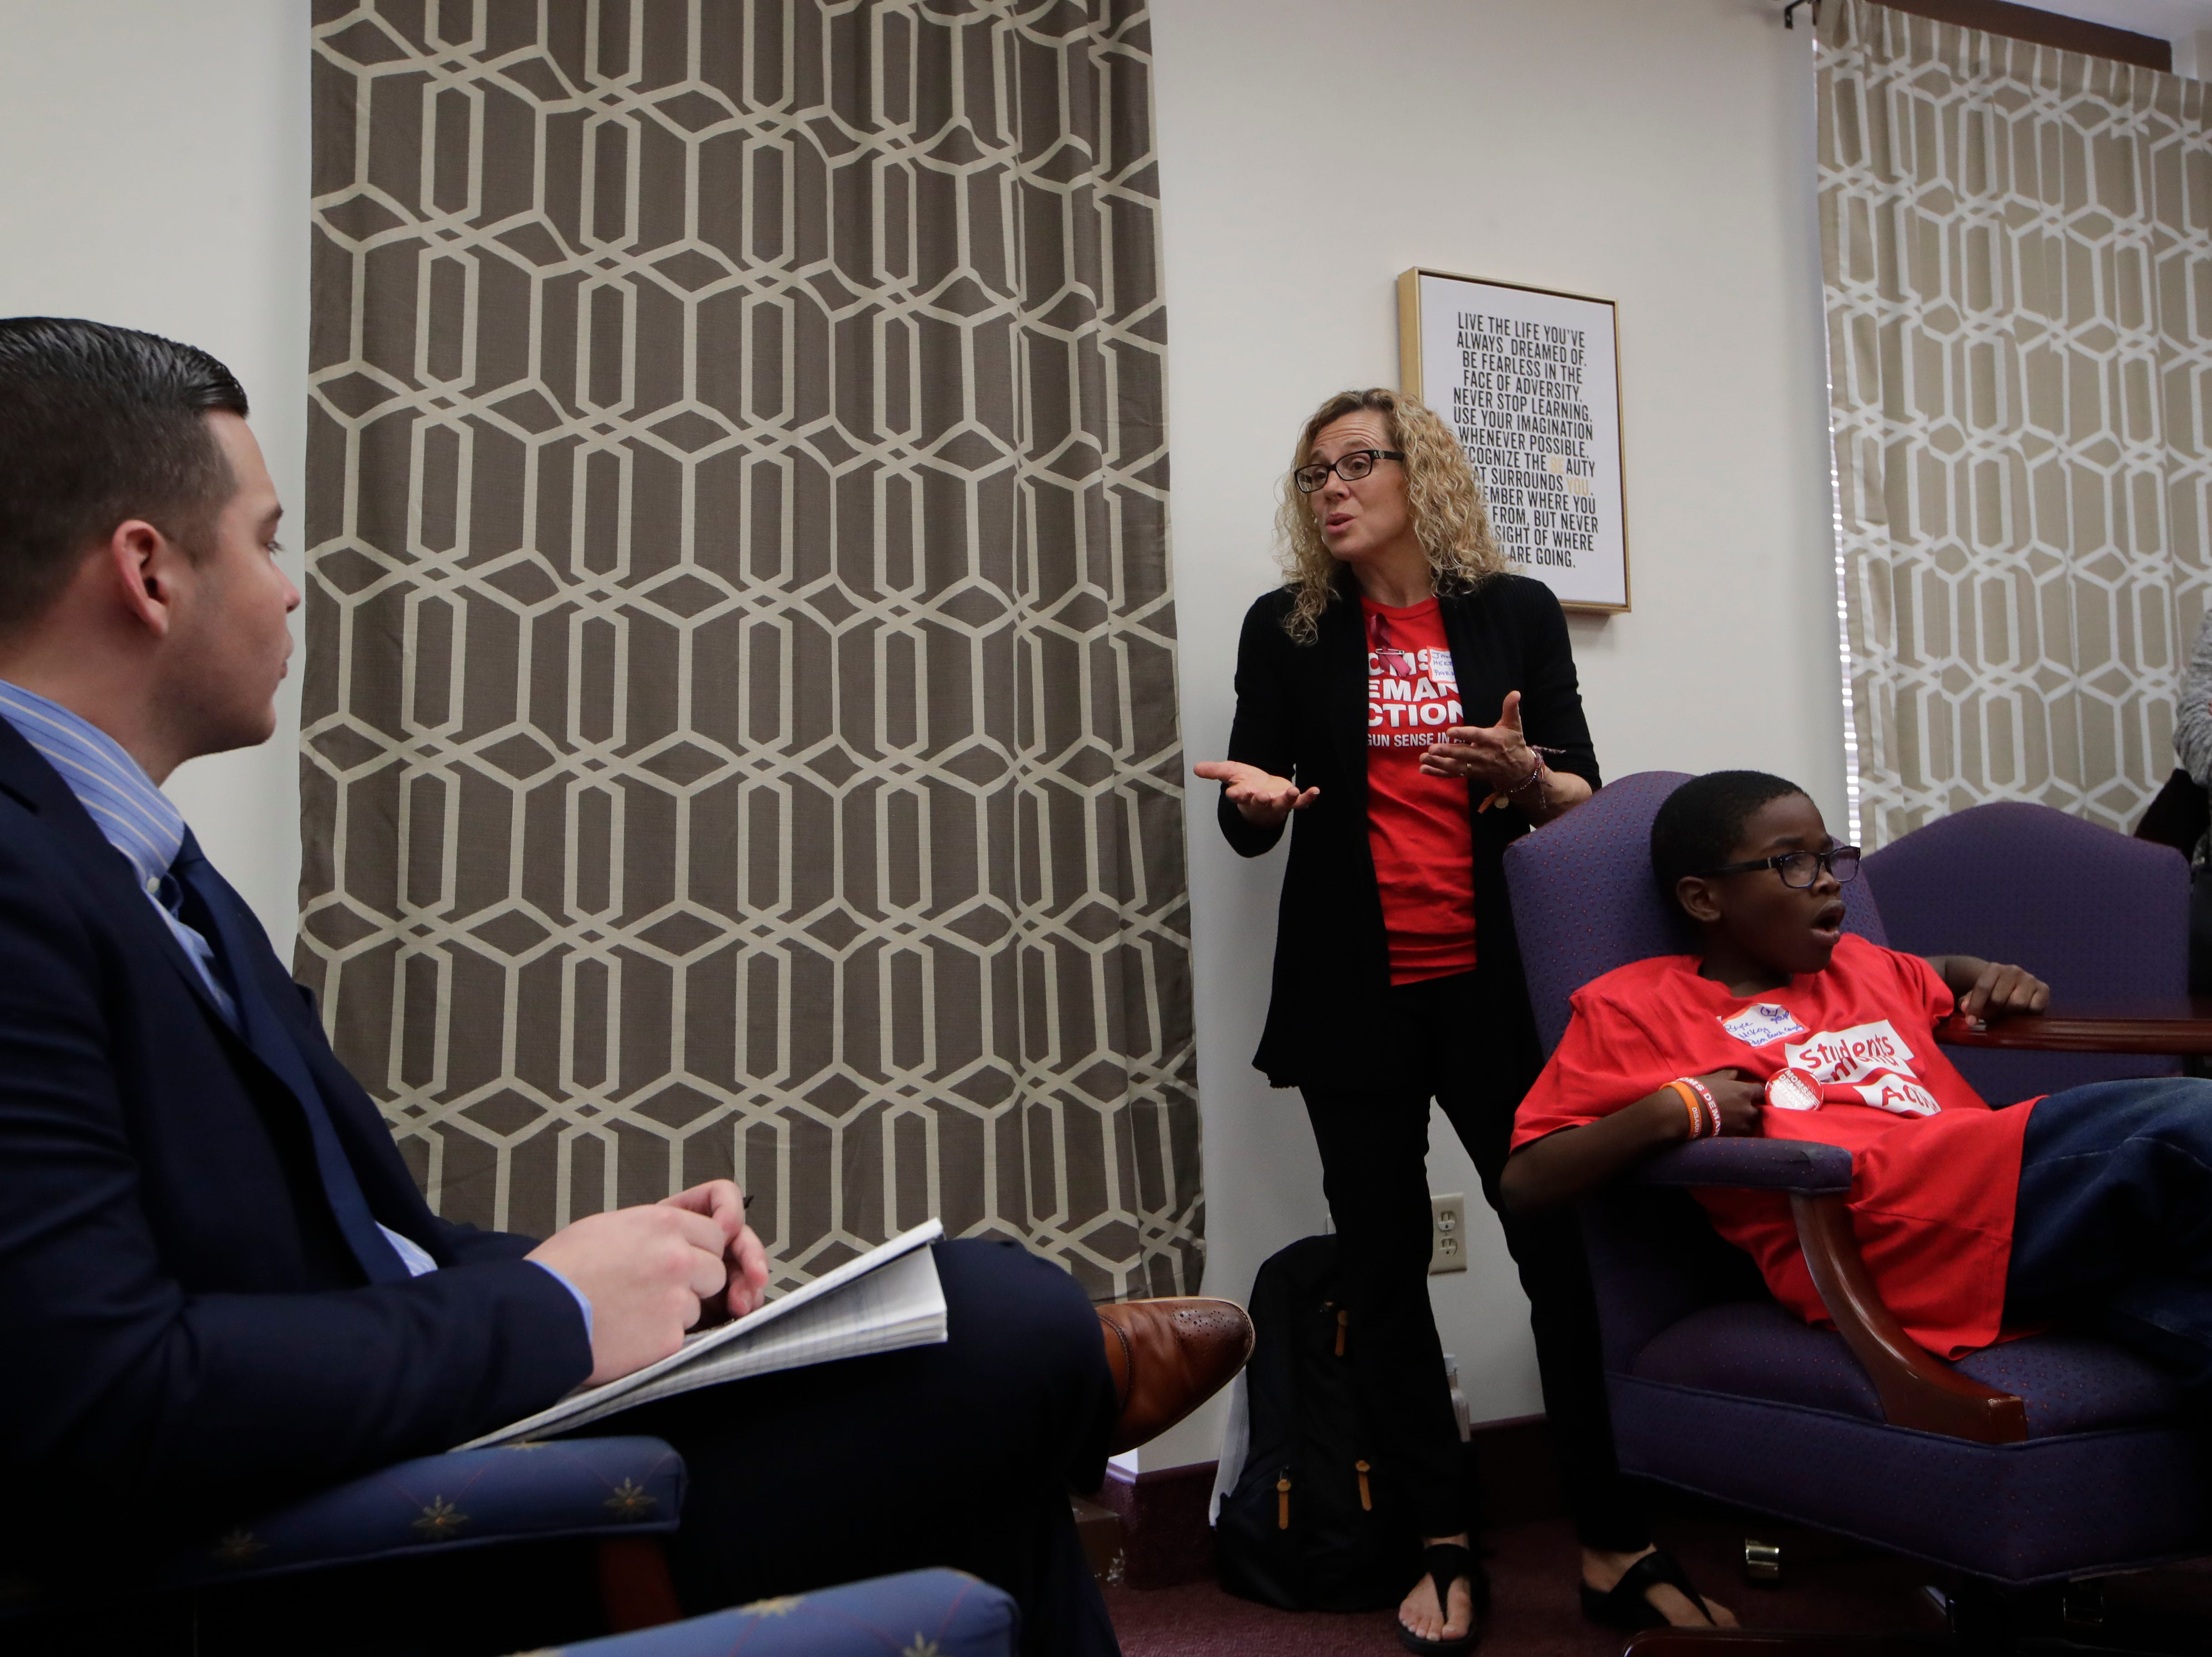 Janice Herbert-Bates, the mother of a Parkland shooting survivor, speaks to Tomas Alcala, a legislative assistant to Sen. Bobby Powell in Powell's office Wednesday, Feb. 6, 2019. Herbert-Bates and over 500 activists from Moms Demand Action visited the Capitol to meet with lawmakers to lobby for stricter gun laws.